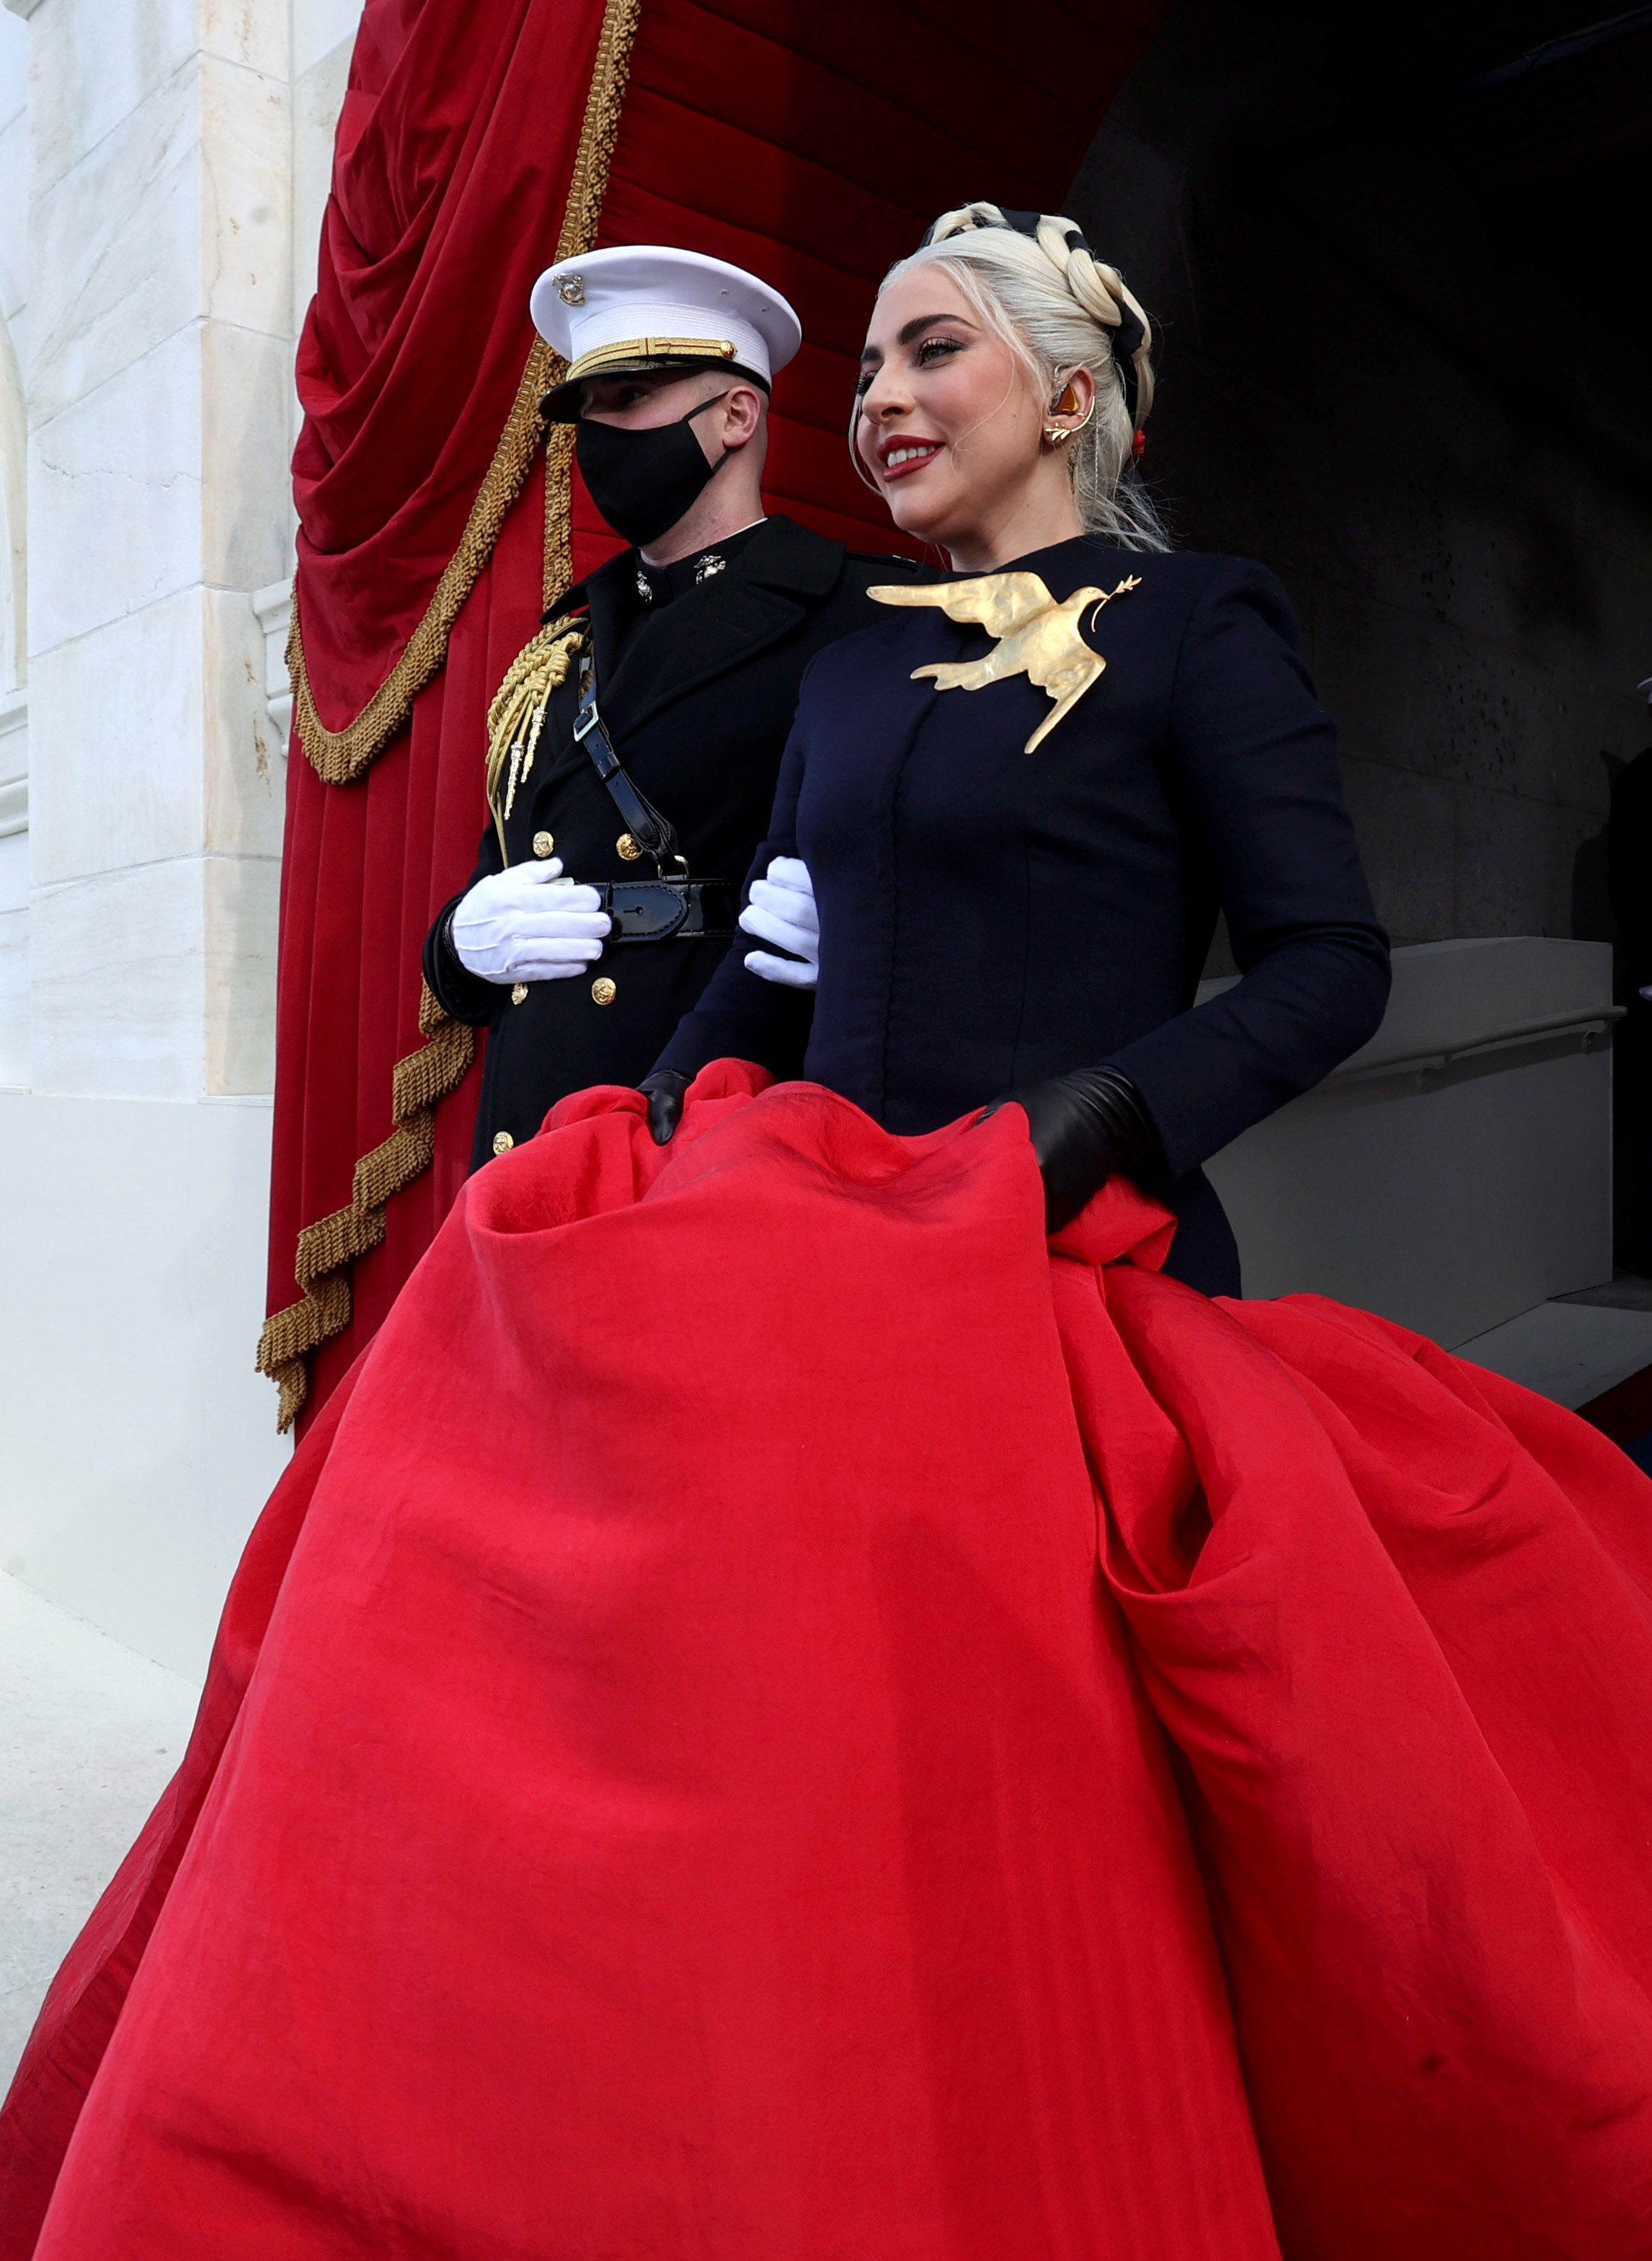 Lady Gaga arriving to give a powerful rendition of the National Anthem at the Presidential Inauguration at the capital, January, 2021. | Photo: Getty Images.